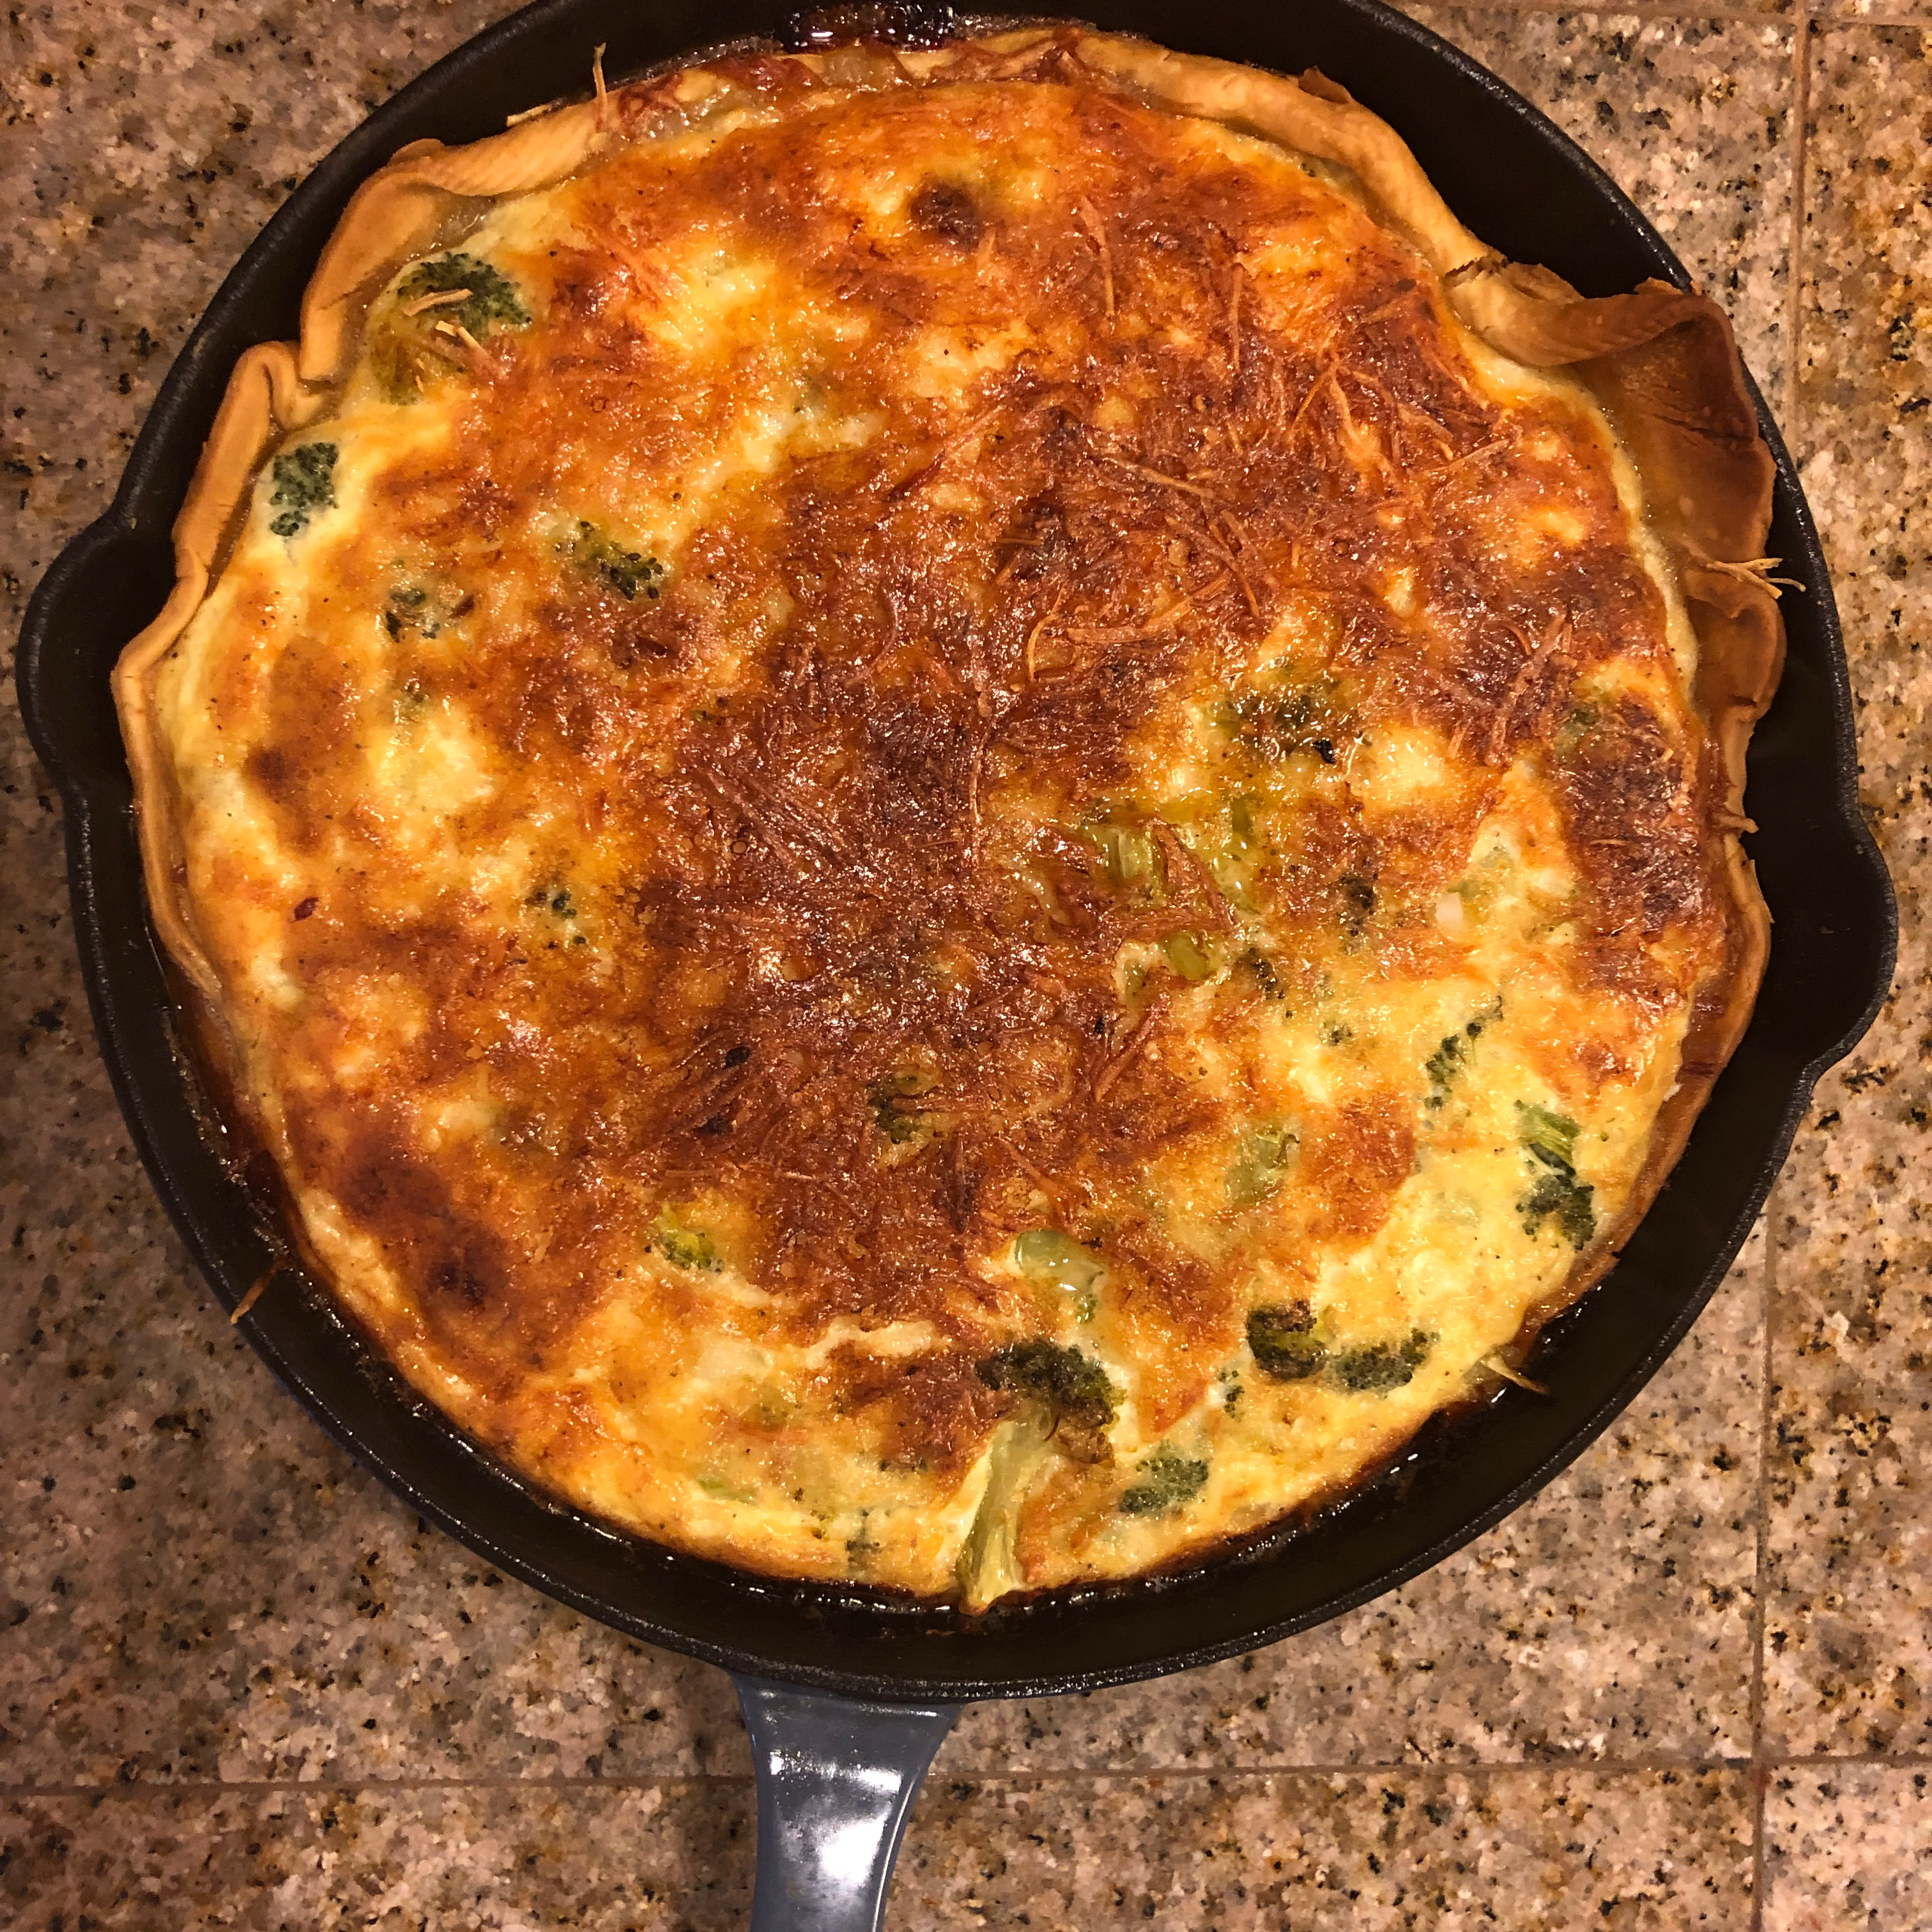 Easy Broccoli Quiche Amie Brown